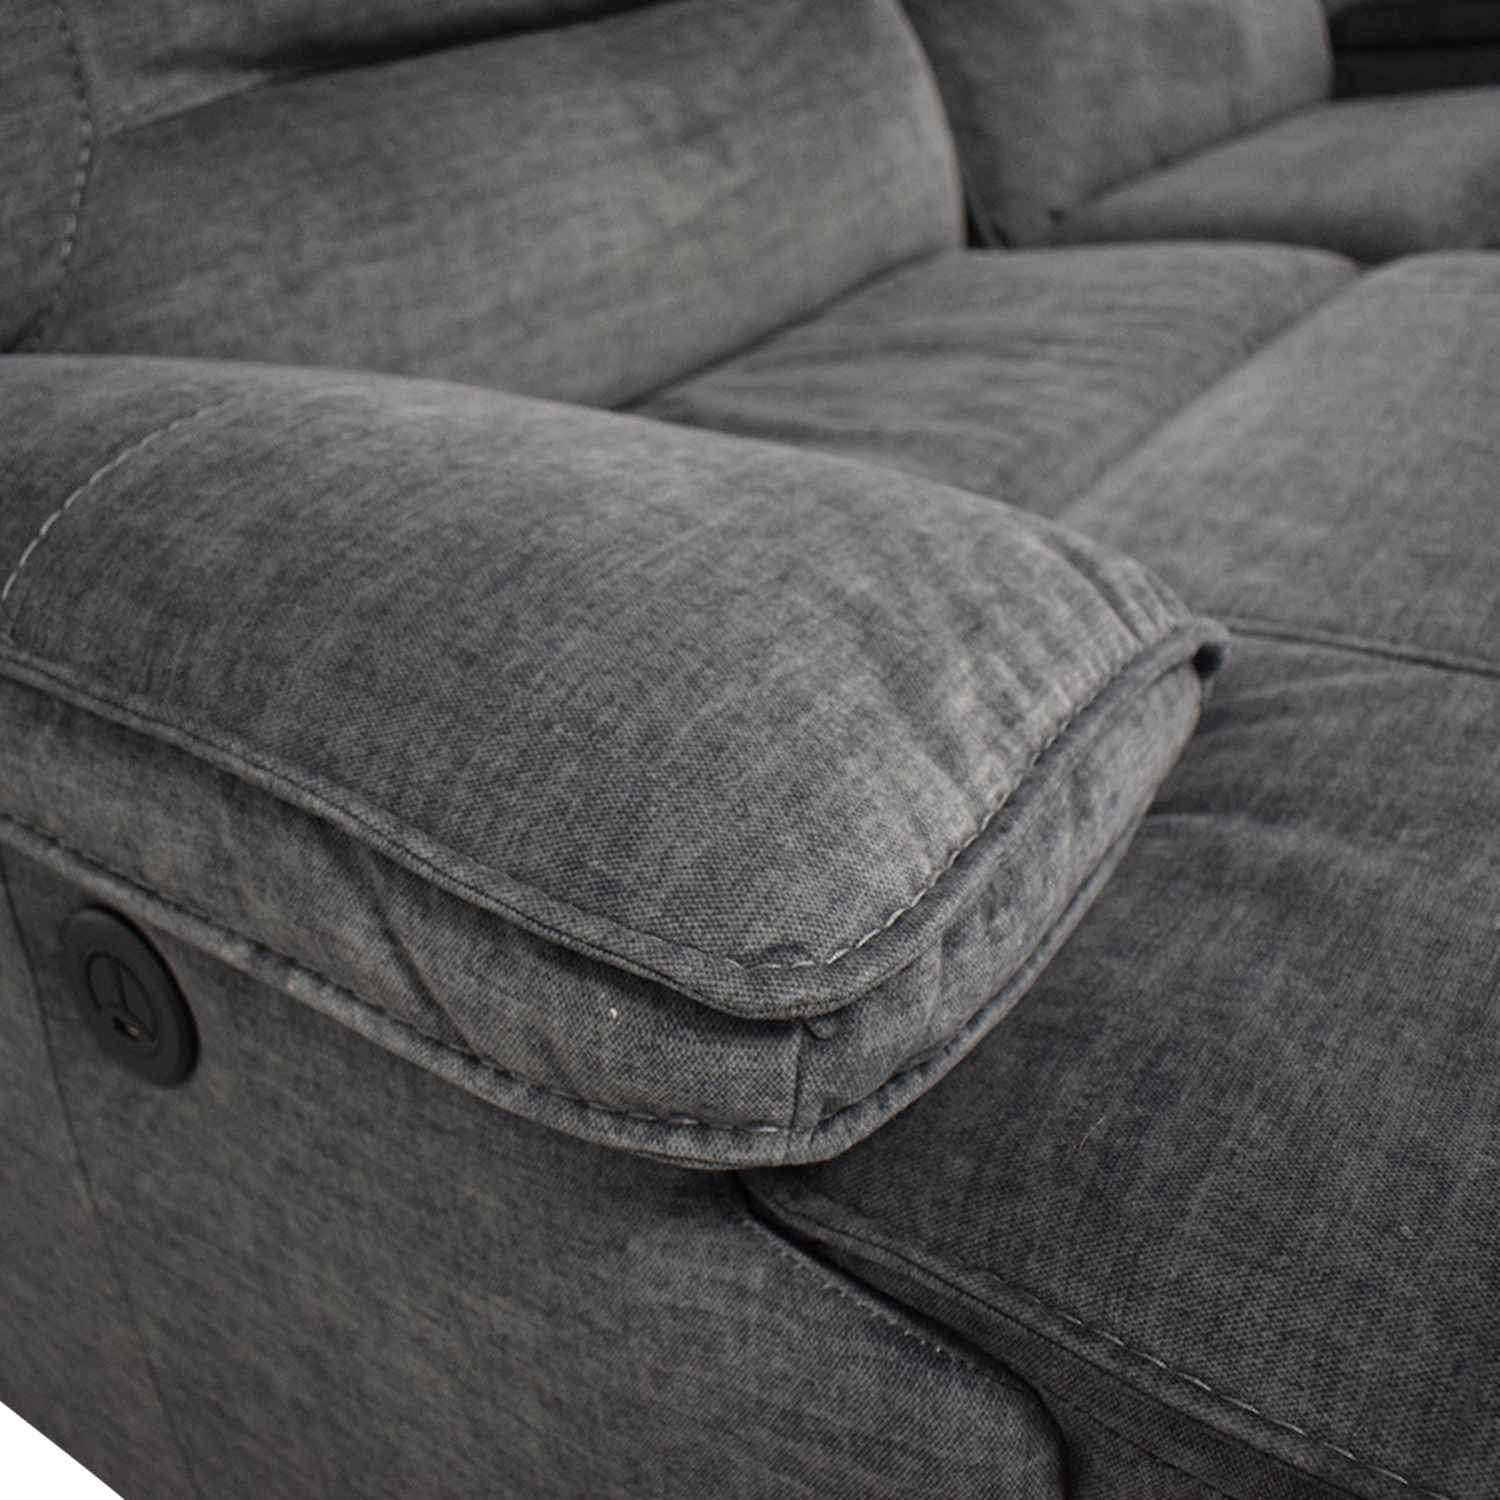 Bob's Discount Furniture Bob's Discount Furniture Reclining Sectional